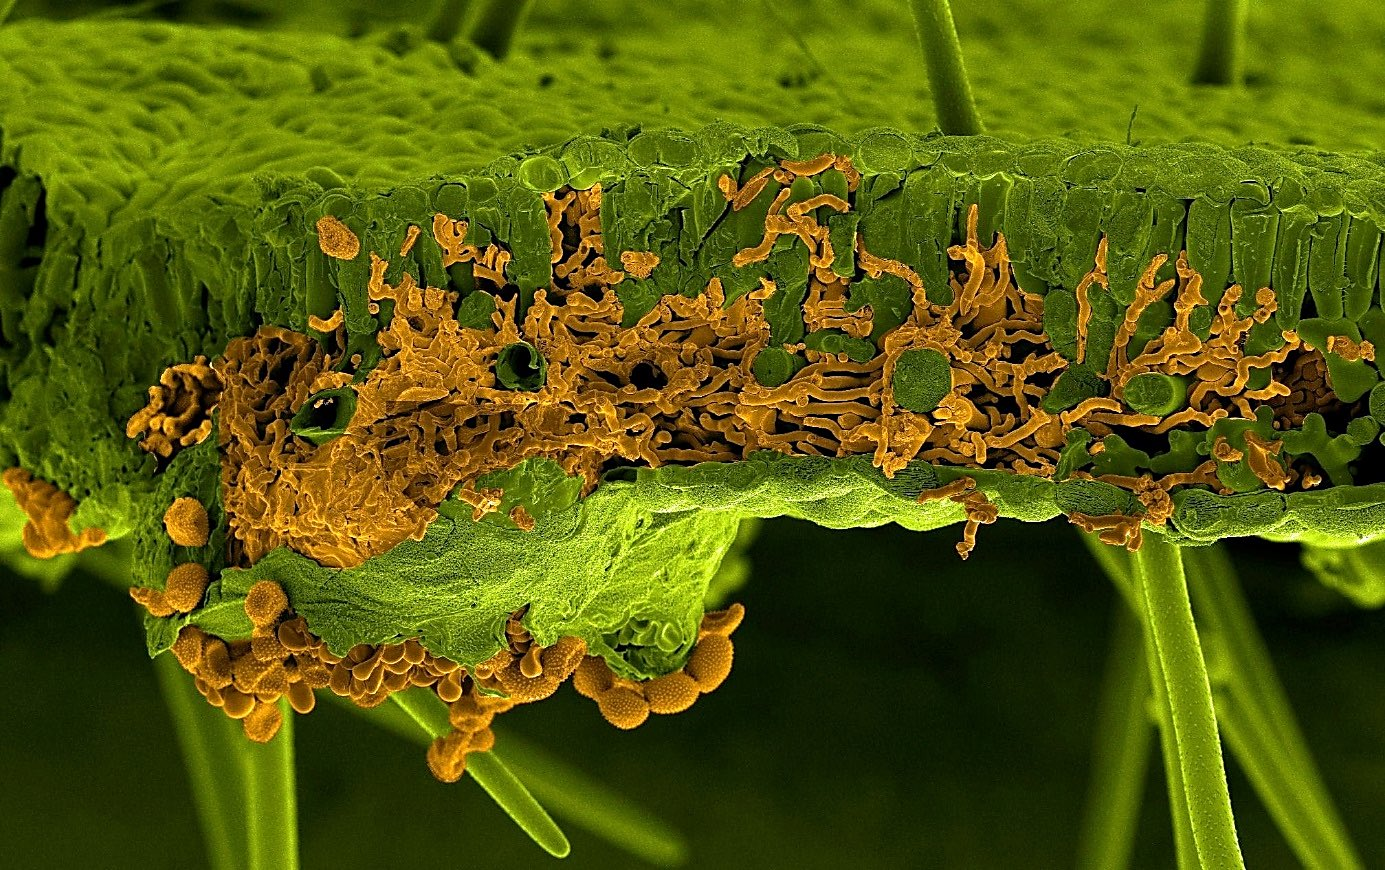 Scanning electron microscopy picture of a soybean leaf infected by the rust fungus Phakopsora pachyrhizi. The leaf and the fungus were artificially painted in green and in orange, respectively. The section shows invading infection hyphae of the fungus inside the leaf mesophyll, whereas the spores are visible below the leaf breaking through the lower epidermis (Picture by U. Steffens, Bayer Crop Science).